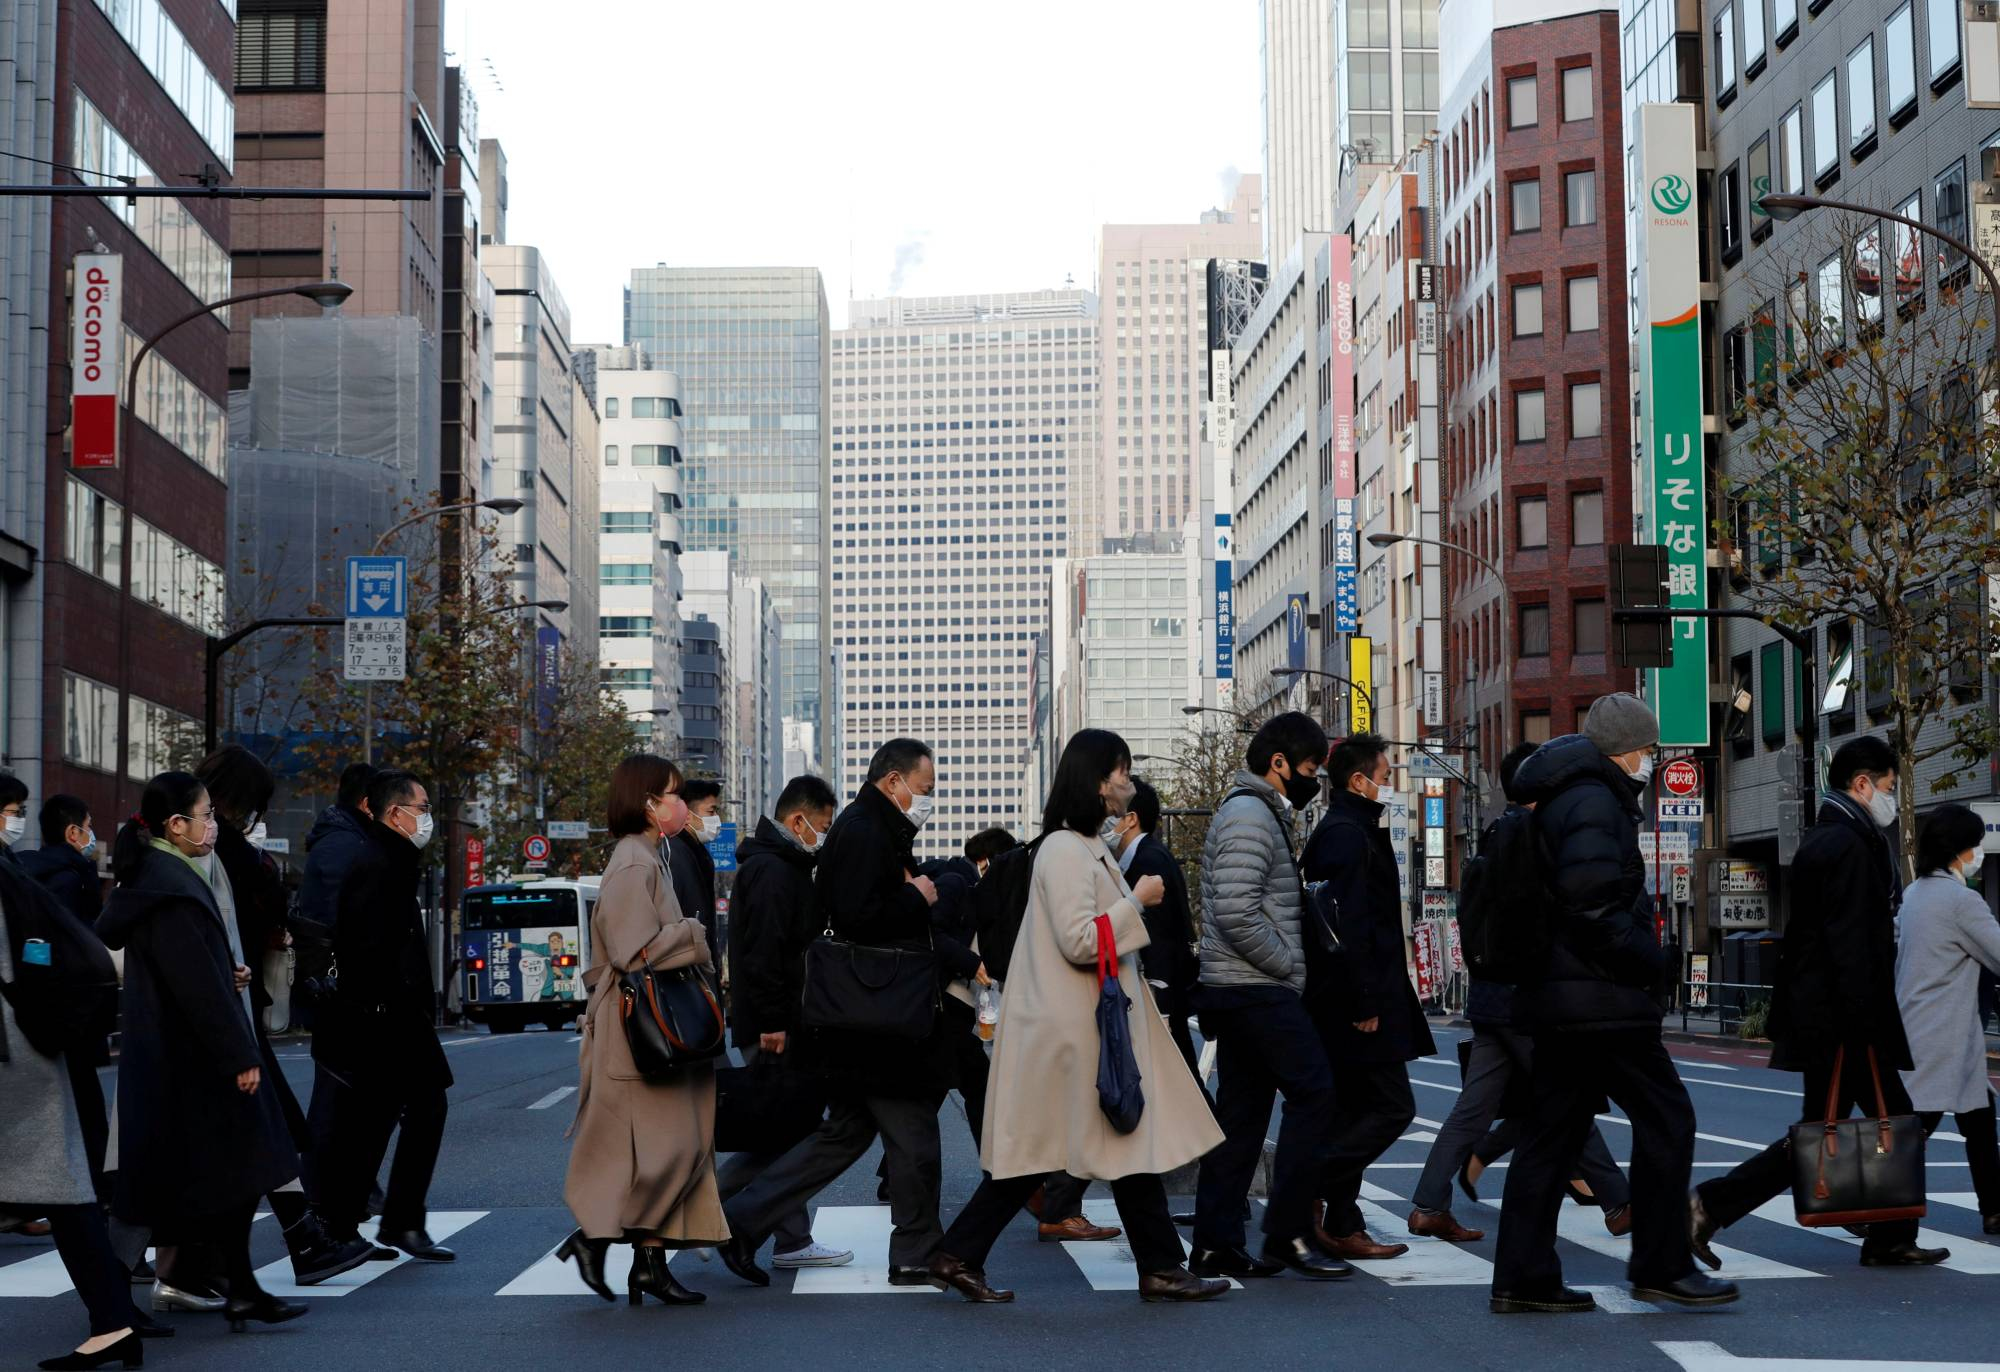 Tokyo confirmed 350 new cases of COVID-19 on Tuesday. | REUTERS